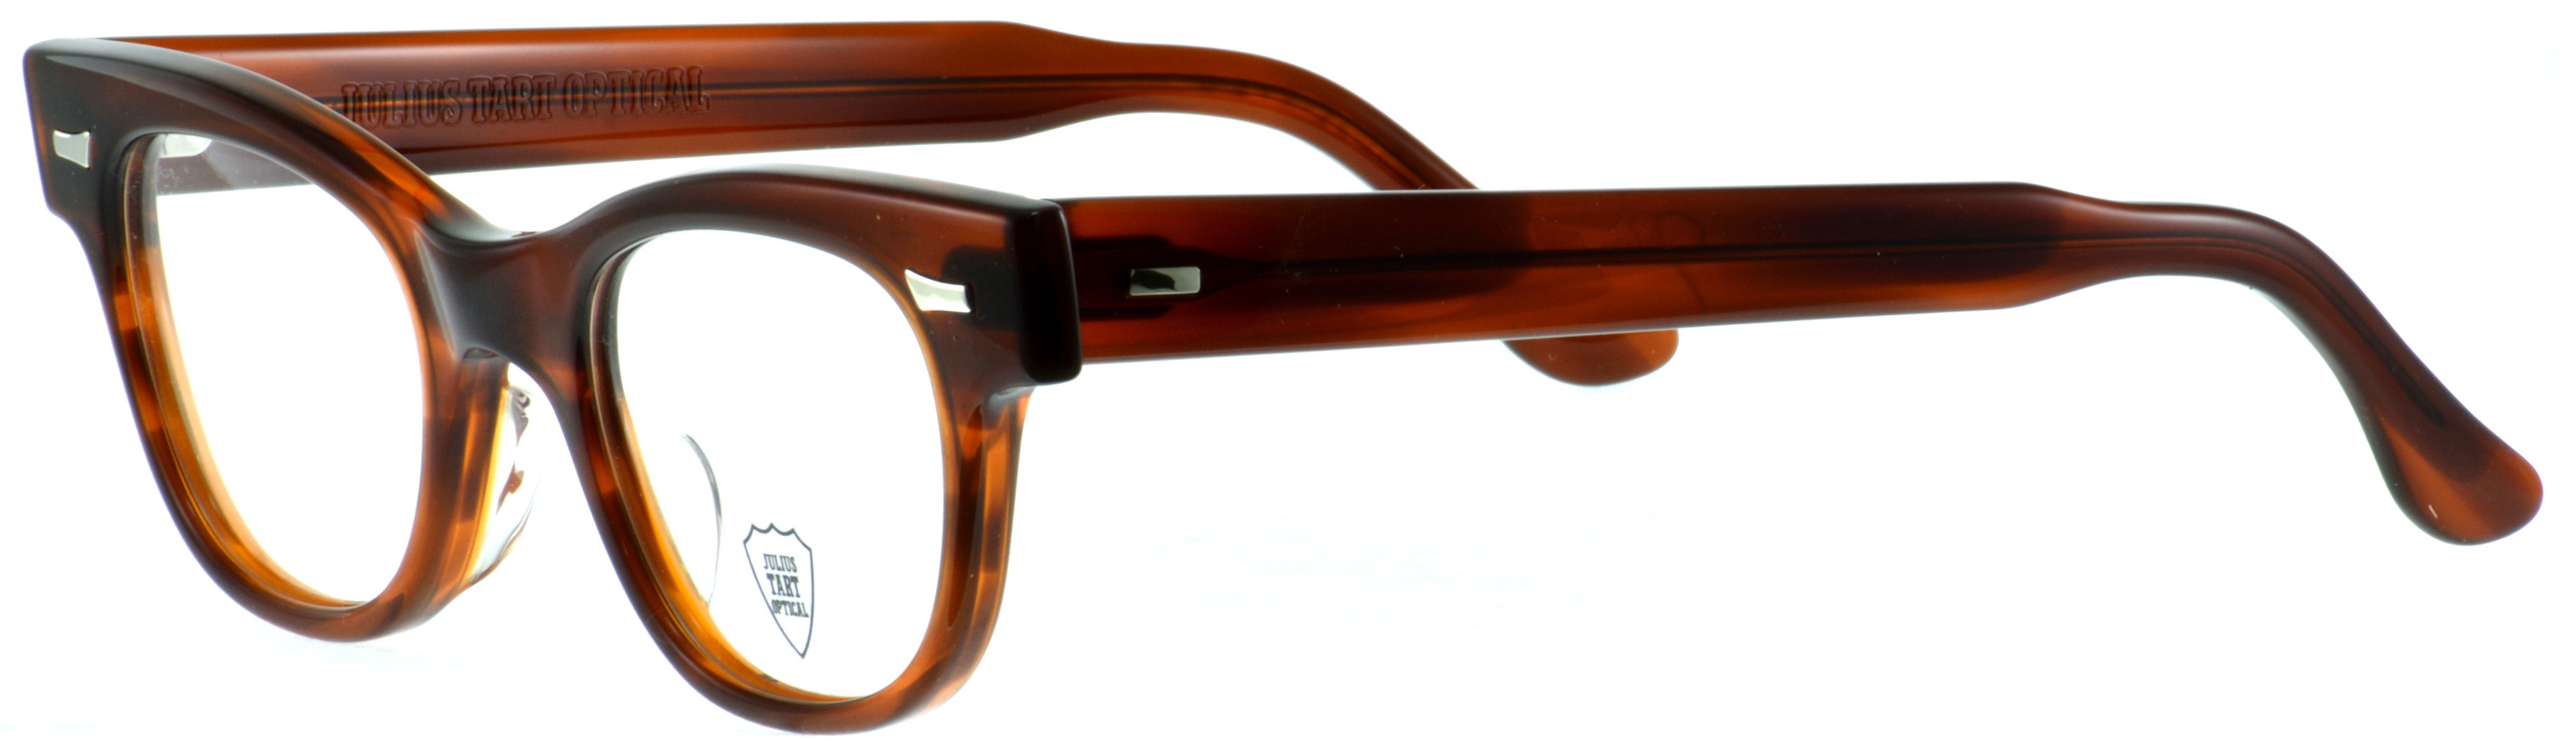 JULIUS TART OPTICAL COUNTDOWN Amber_Clear 1010441302_00015_00023